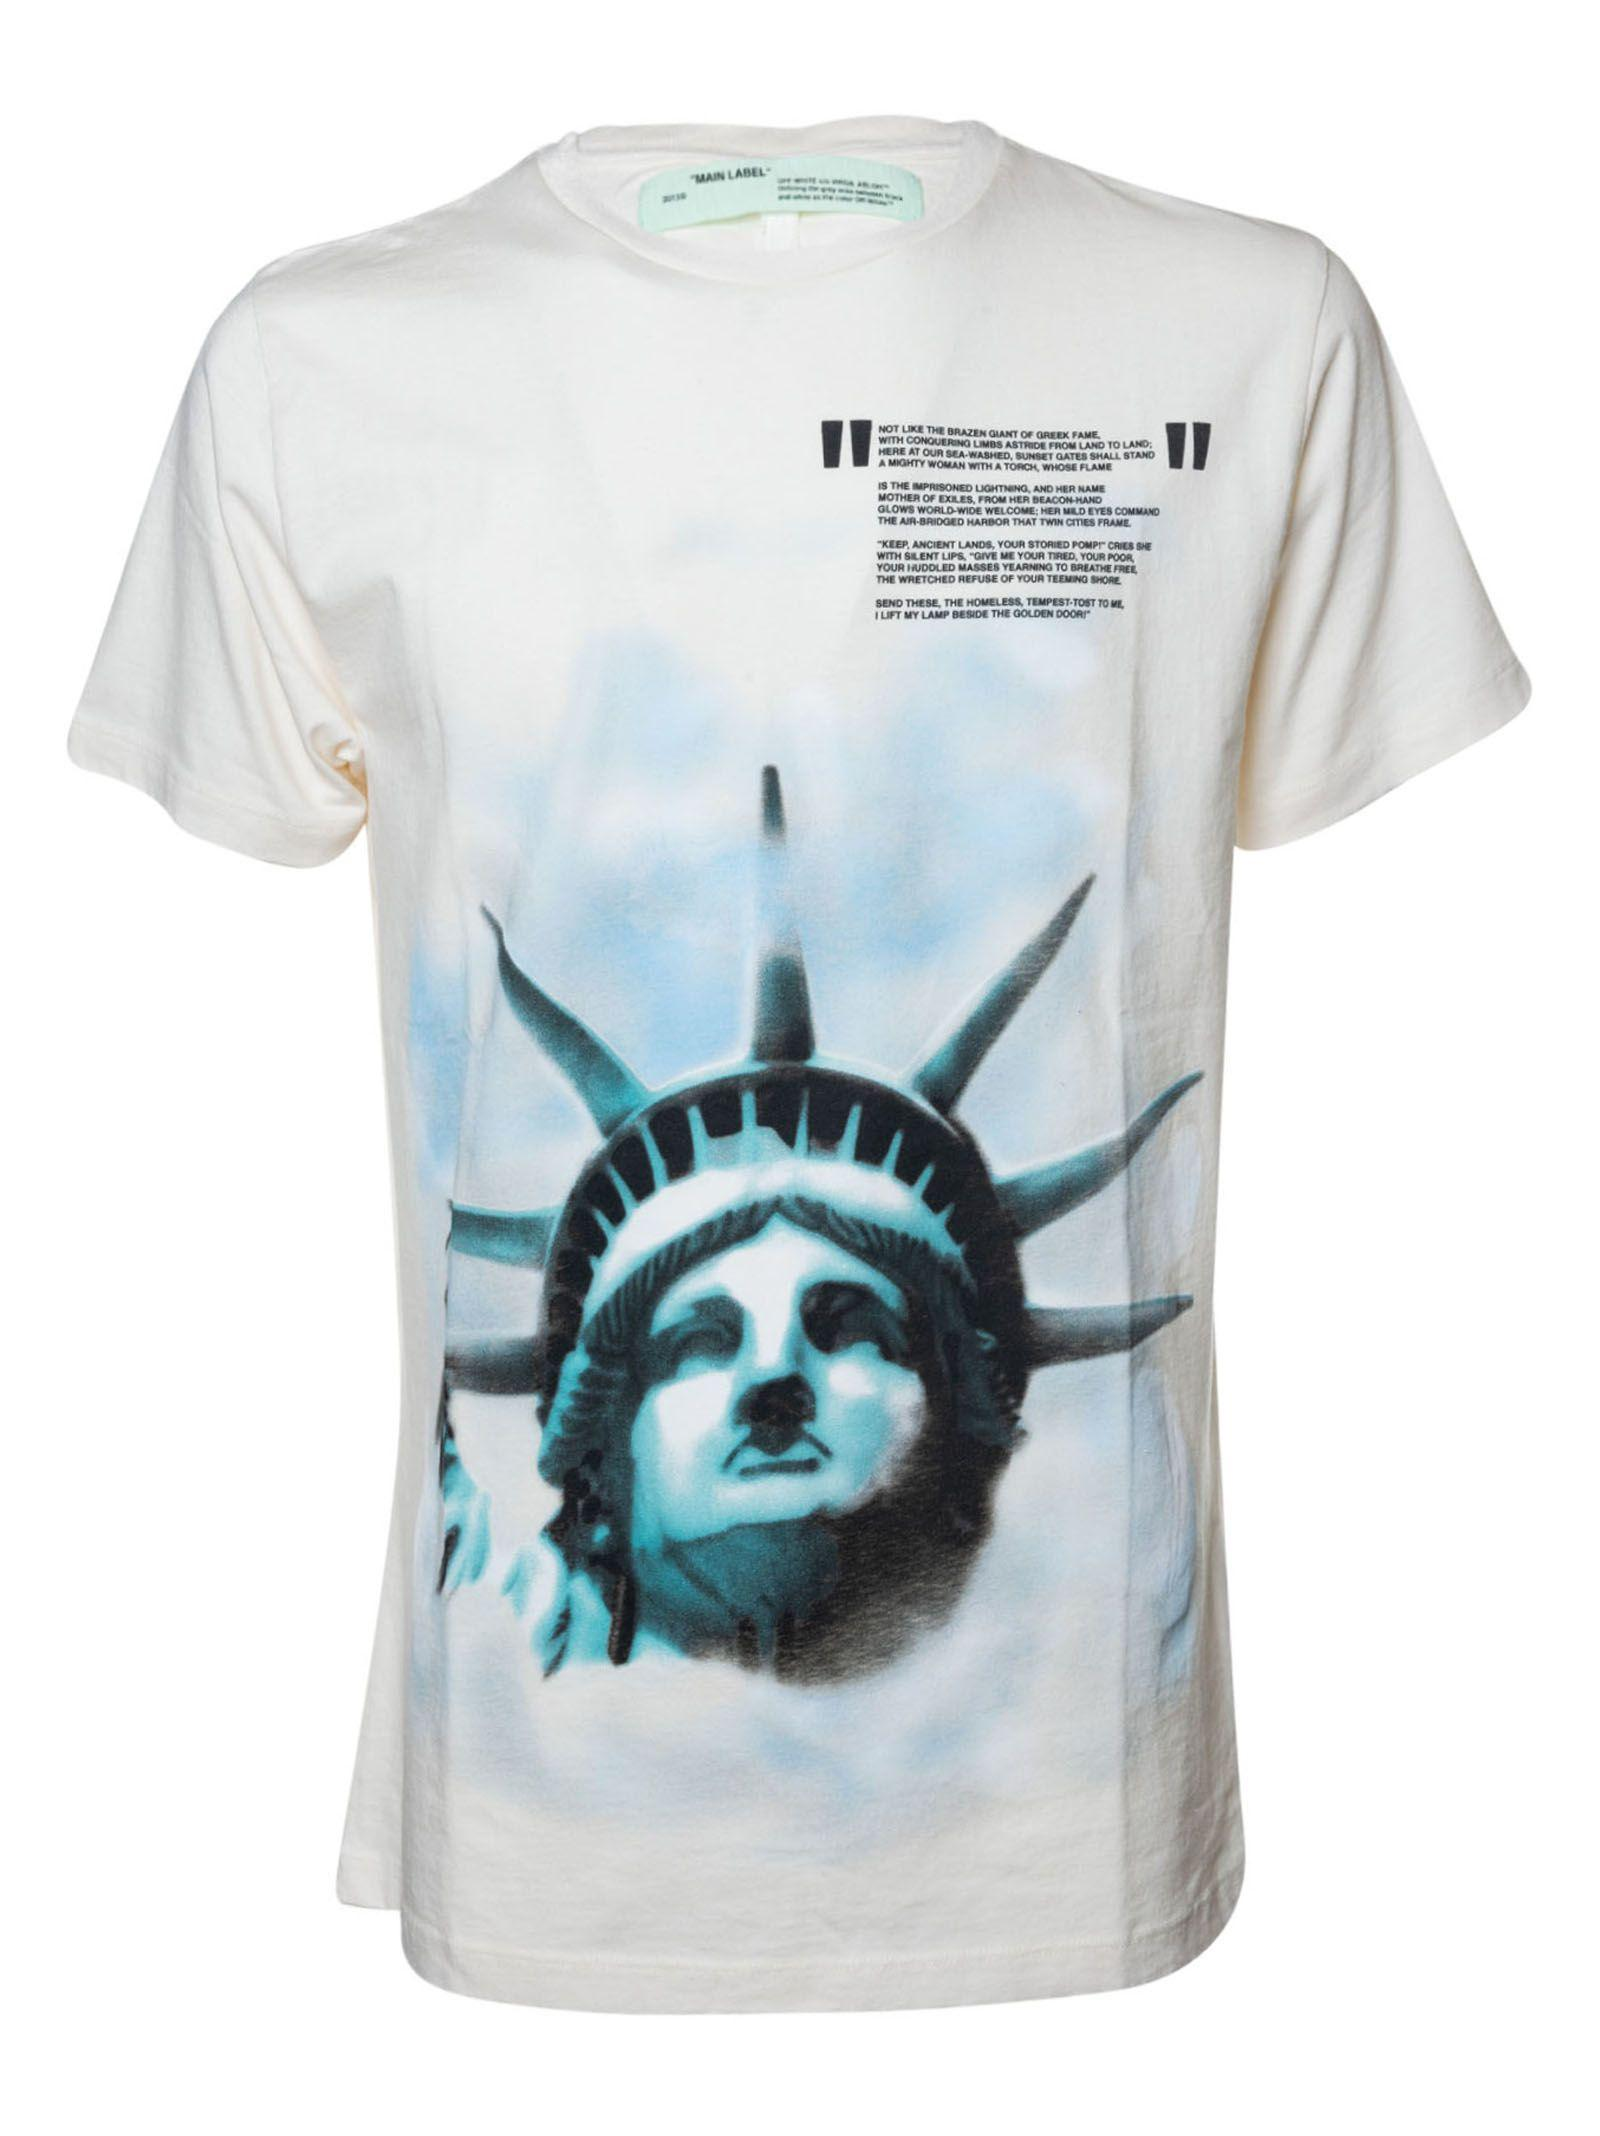 Off-White Statue Of Liberty Print T-Shirt in Off White Black